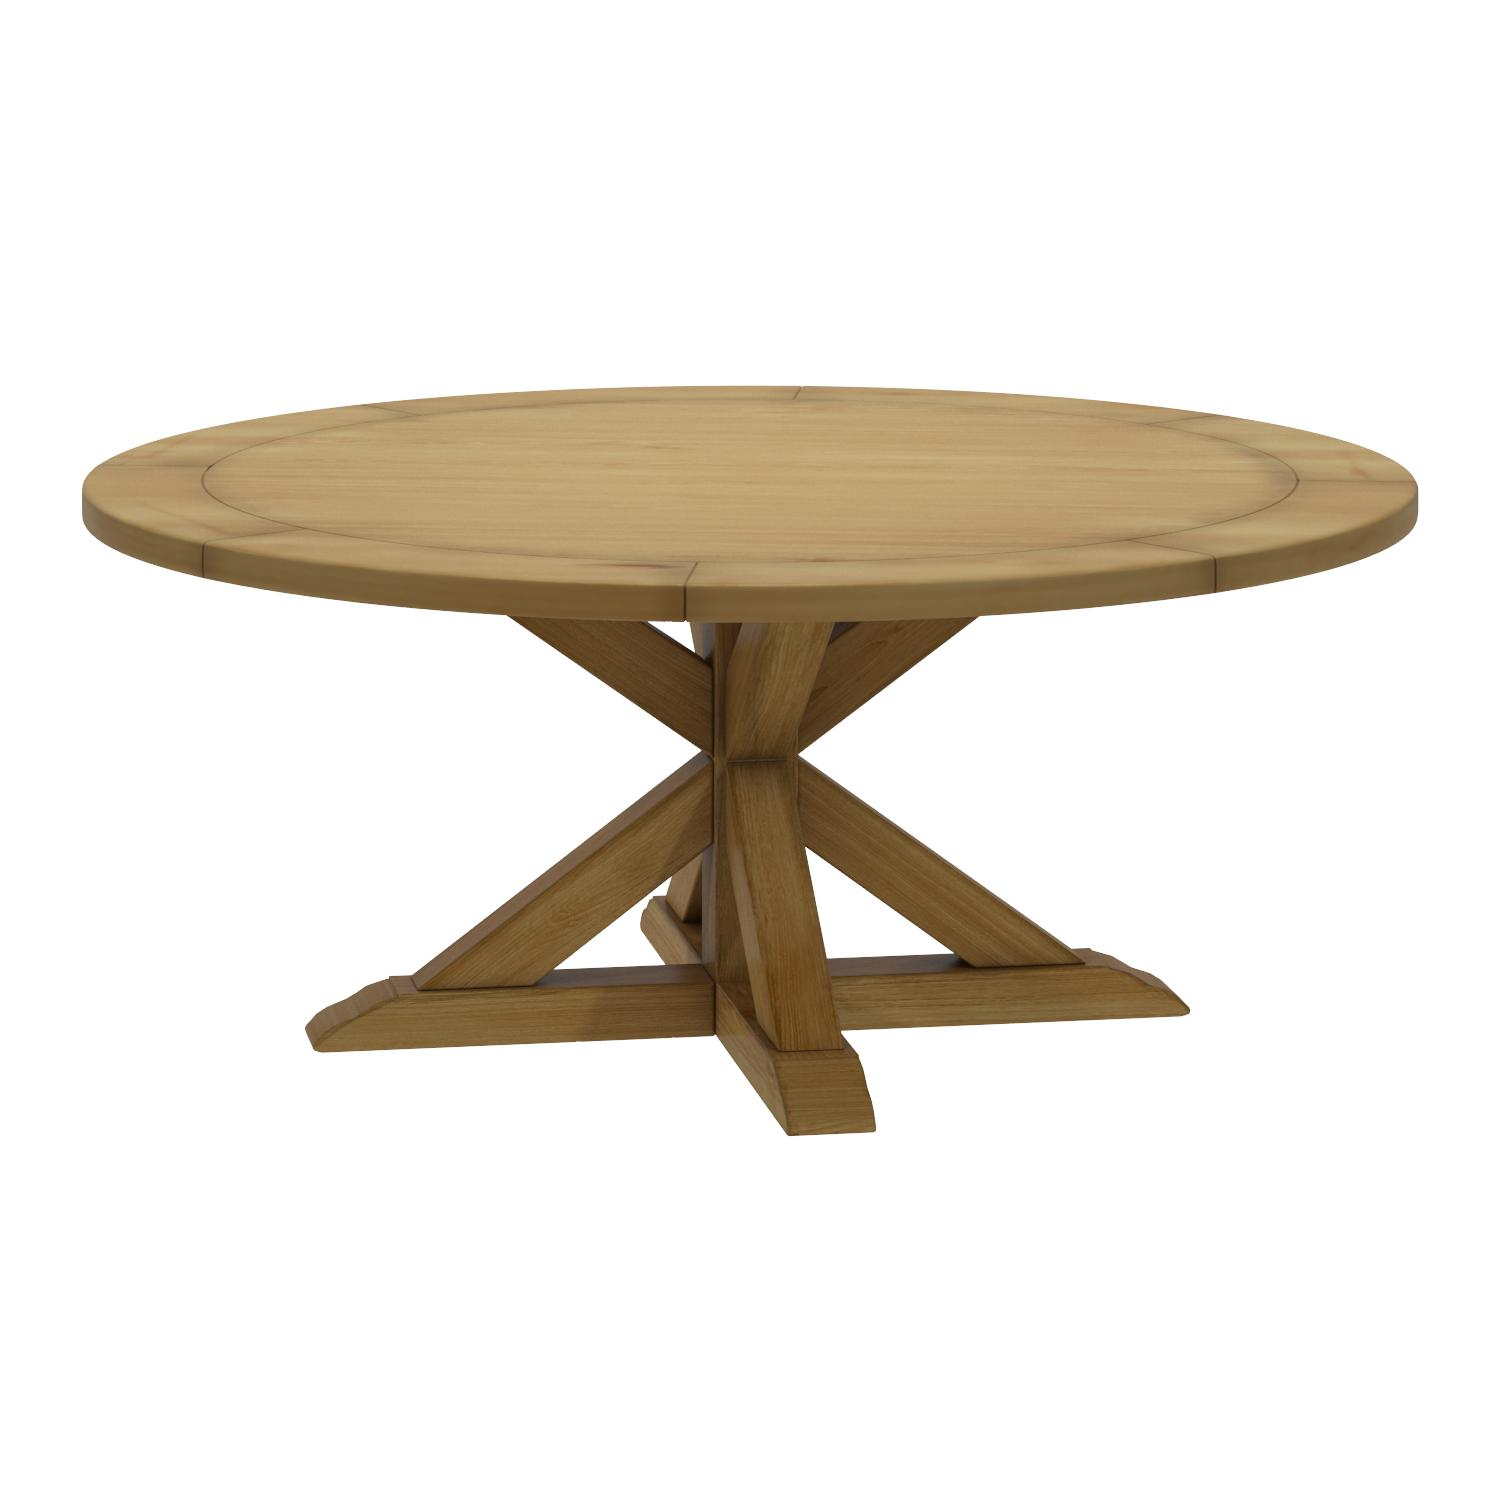 South Cone Home Bayliss Round Dining Table 72 Maple Amazon Co Uk Kitchen Home